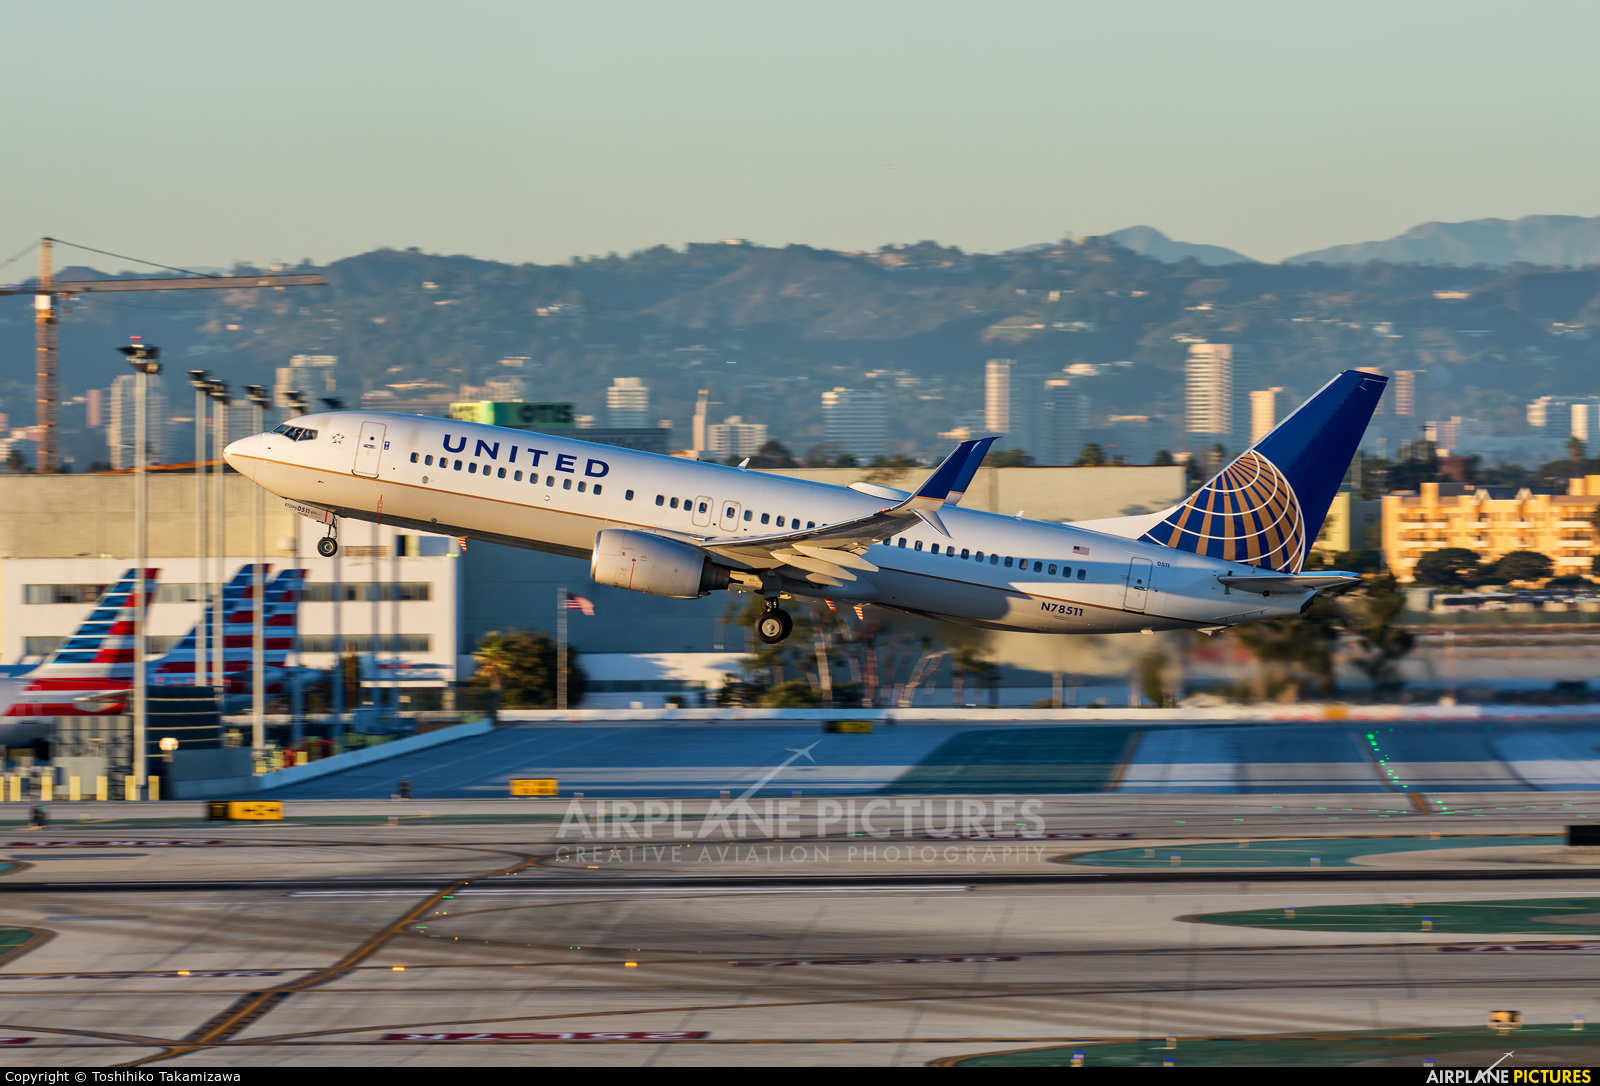 United Airlines N78511 aircraft at Los Angeles Intl